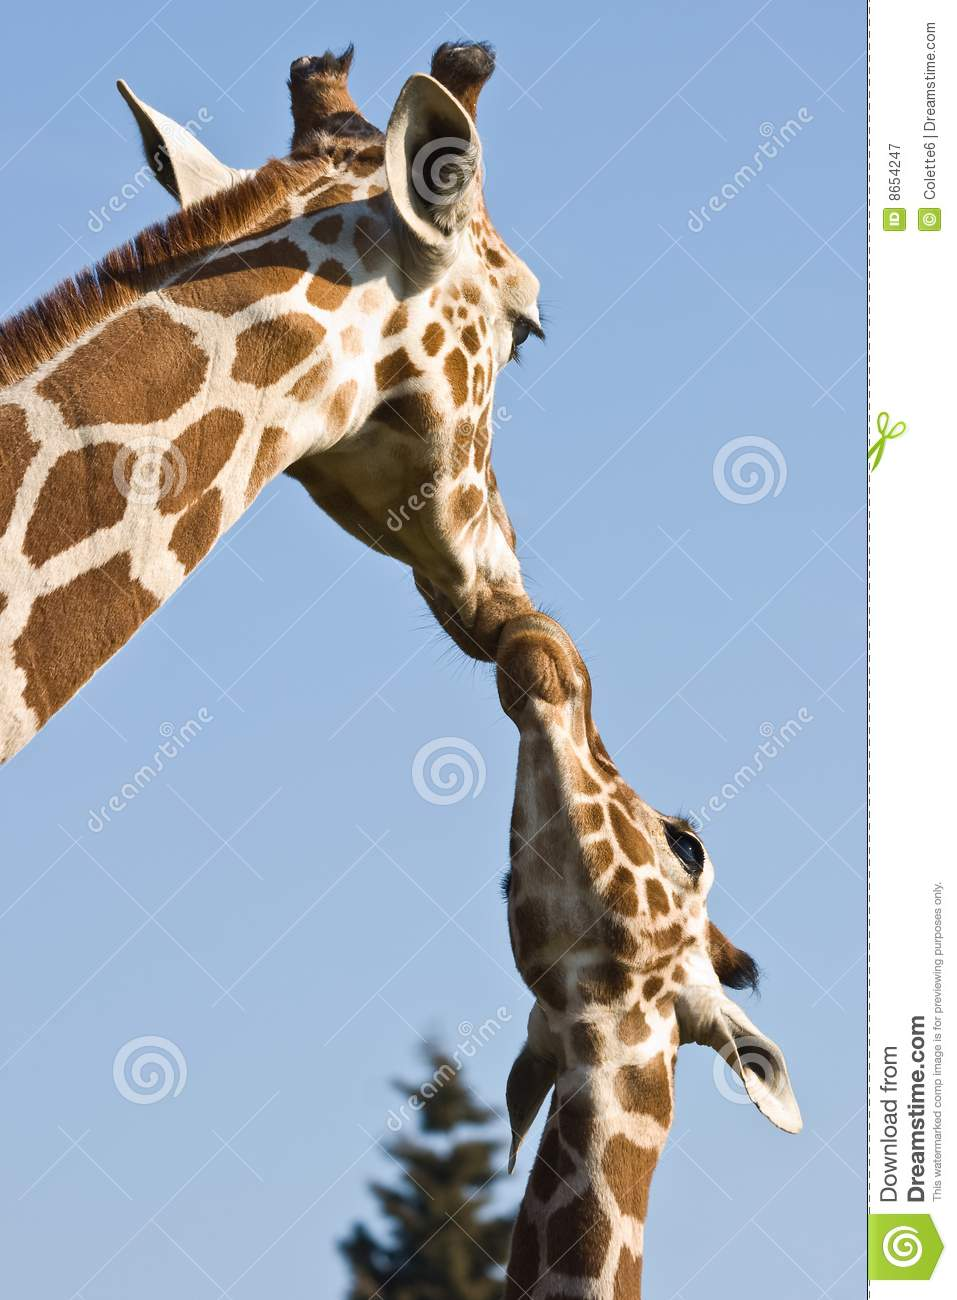 Giraffe Mother And Baby Royalty Free Stock Photography - Image ...